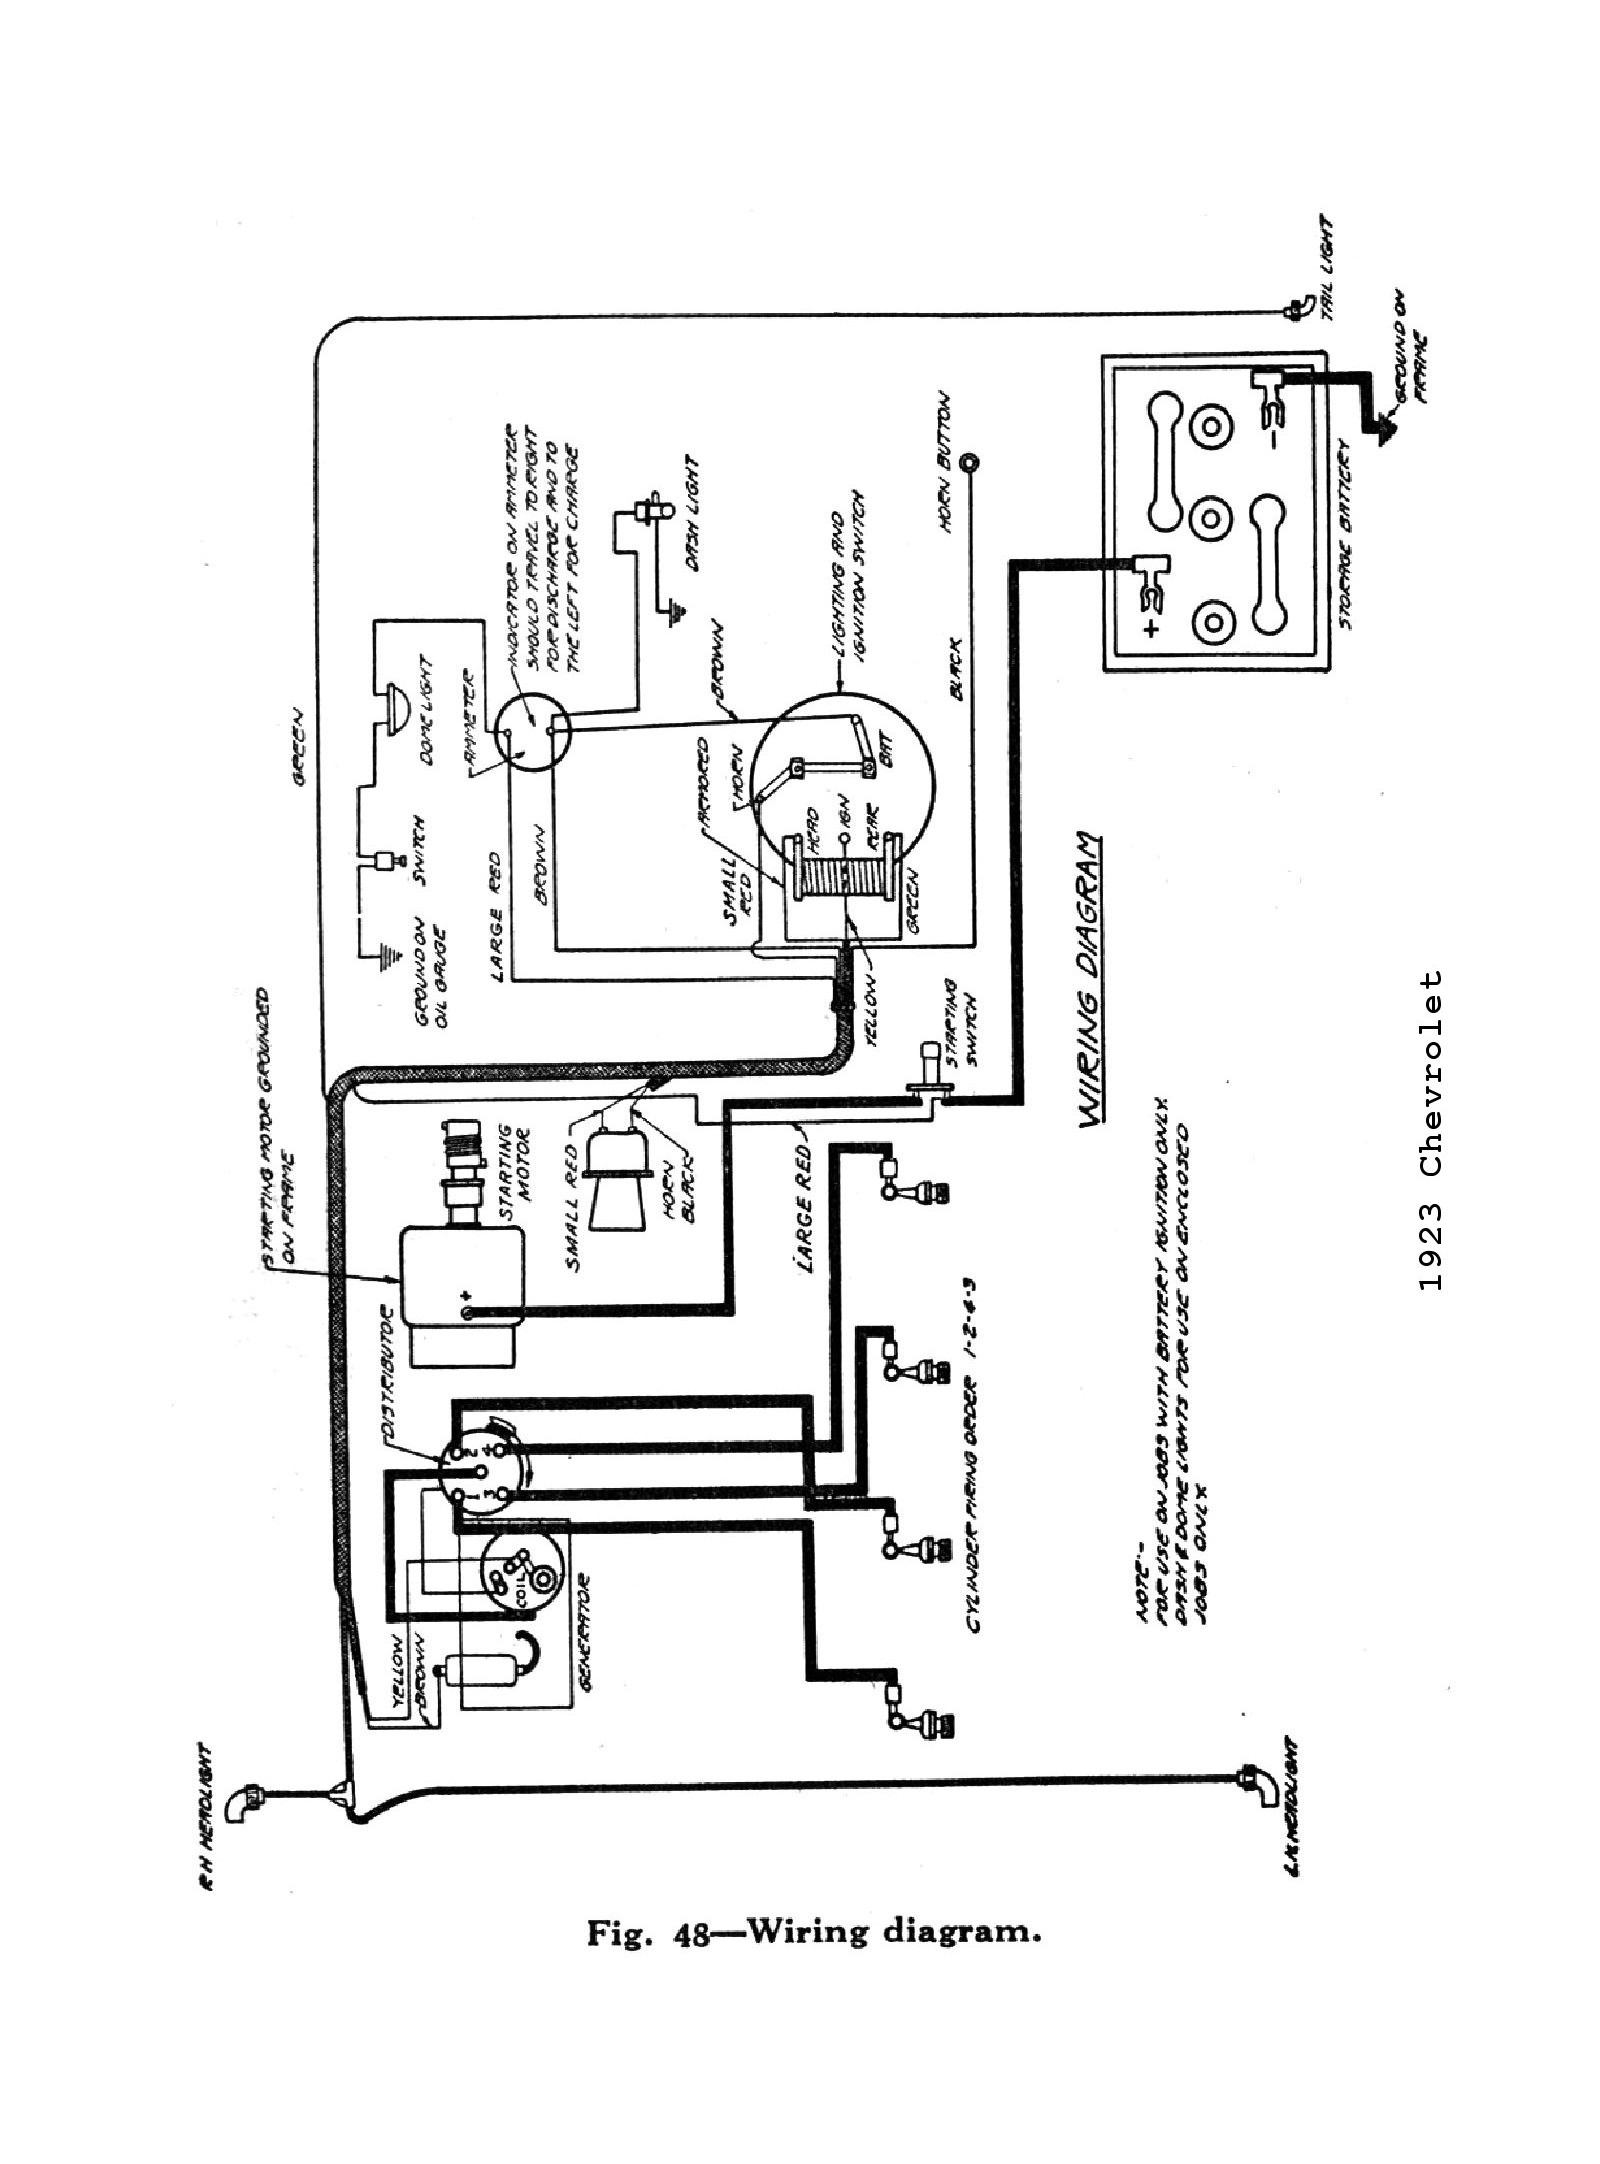 CMG 40] 40 Chevy Pickup Wiring Diagram   wiring diagram CMG 40 ...